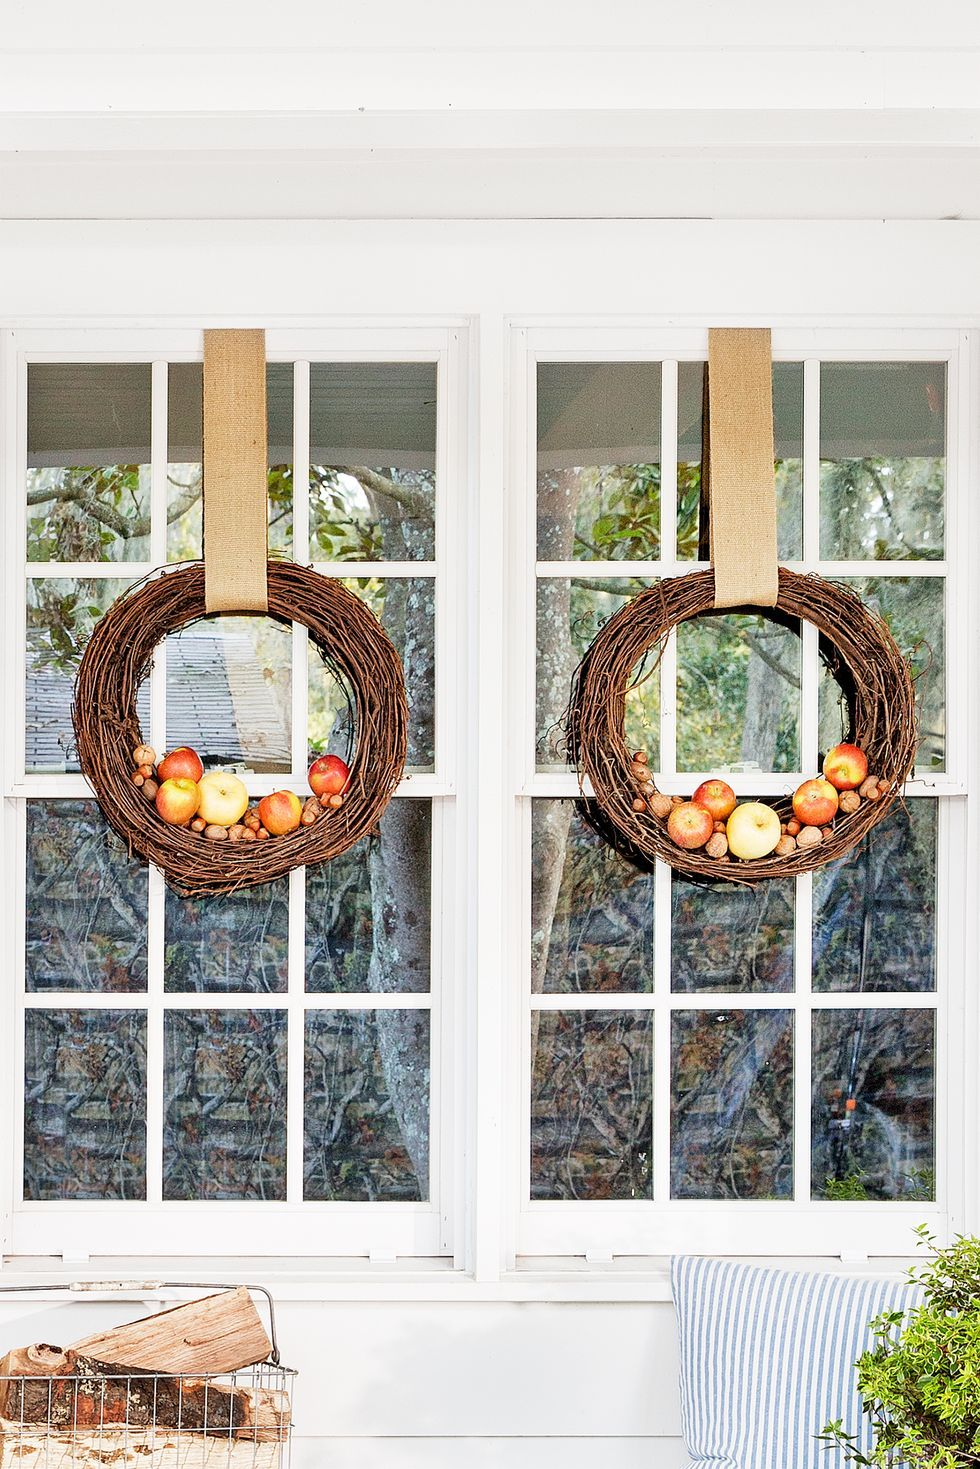 35 Best Fall Home Decorating Ideas 2020 Autumn Decorations For Your House